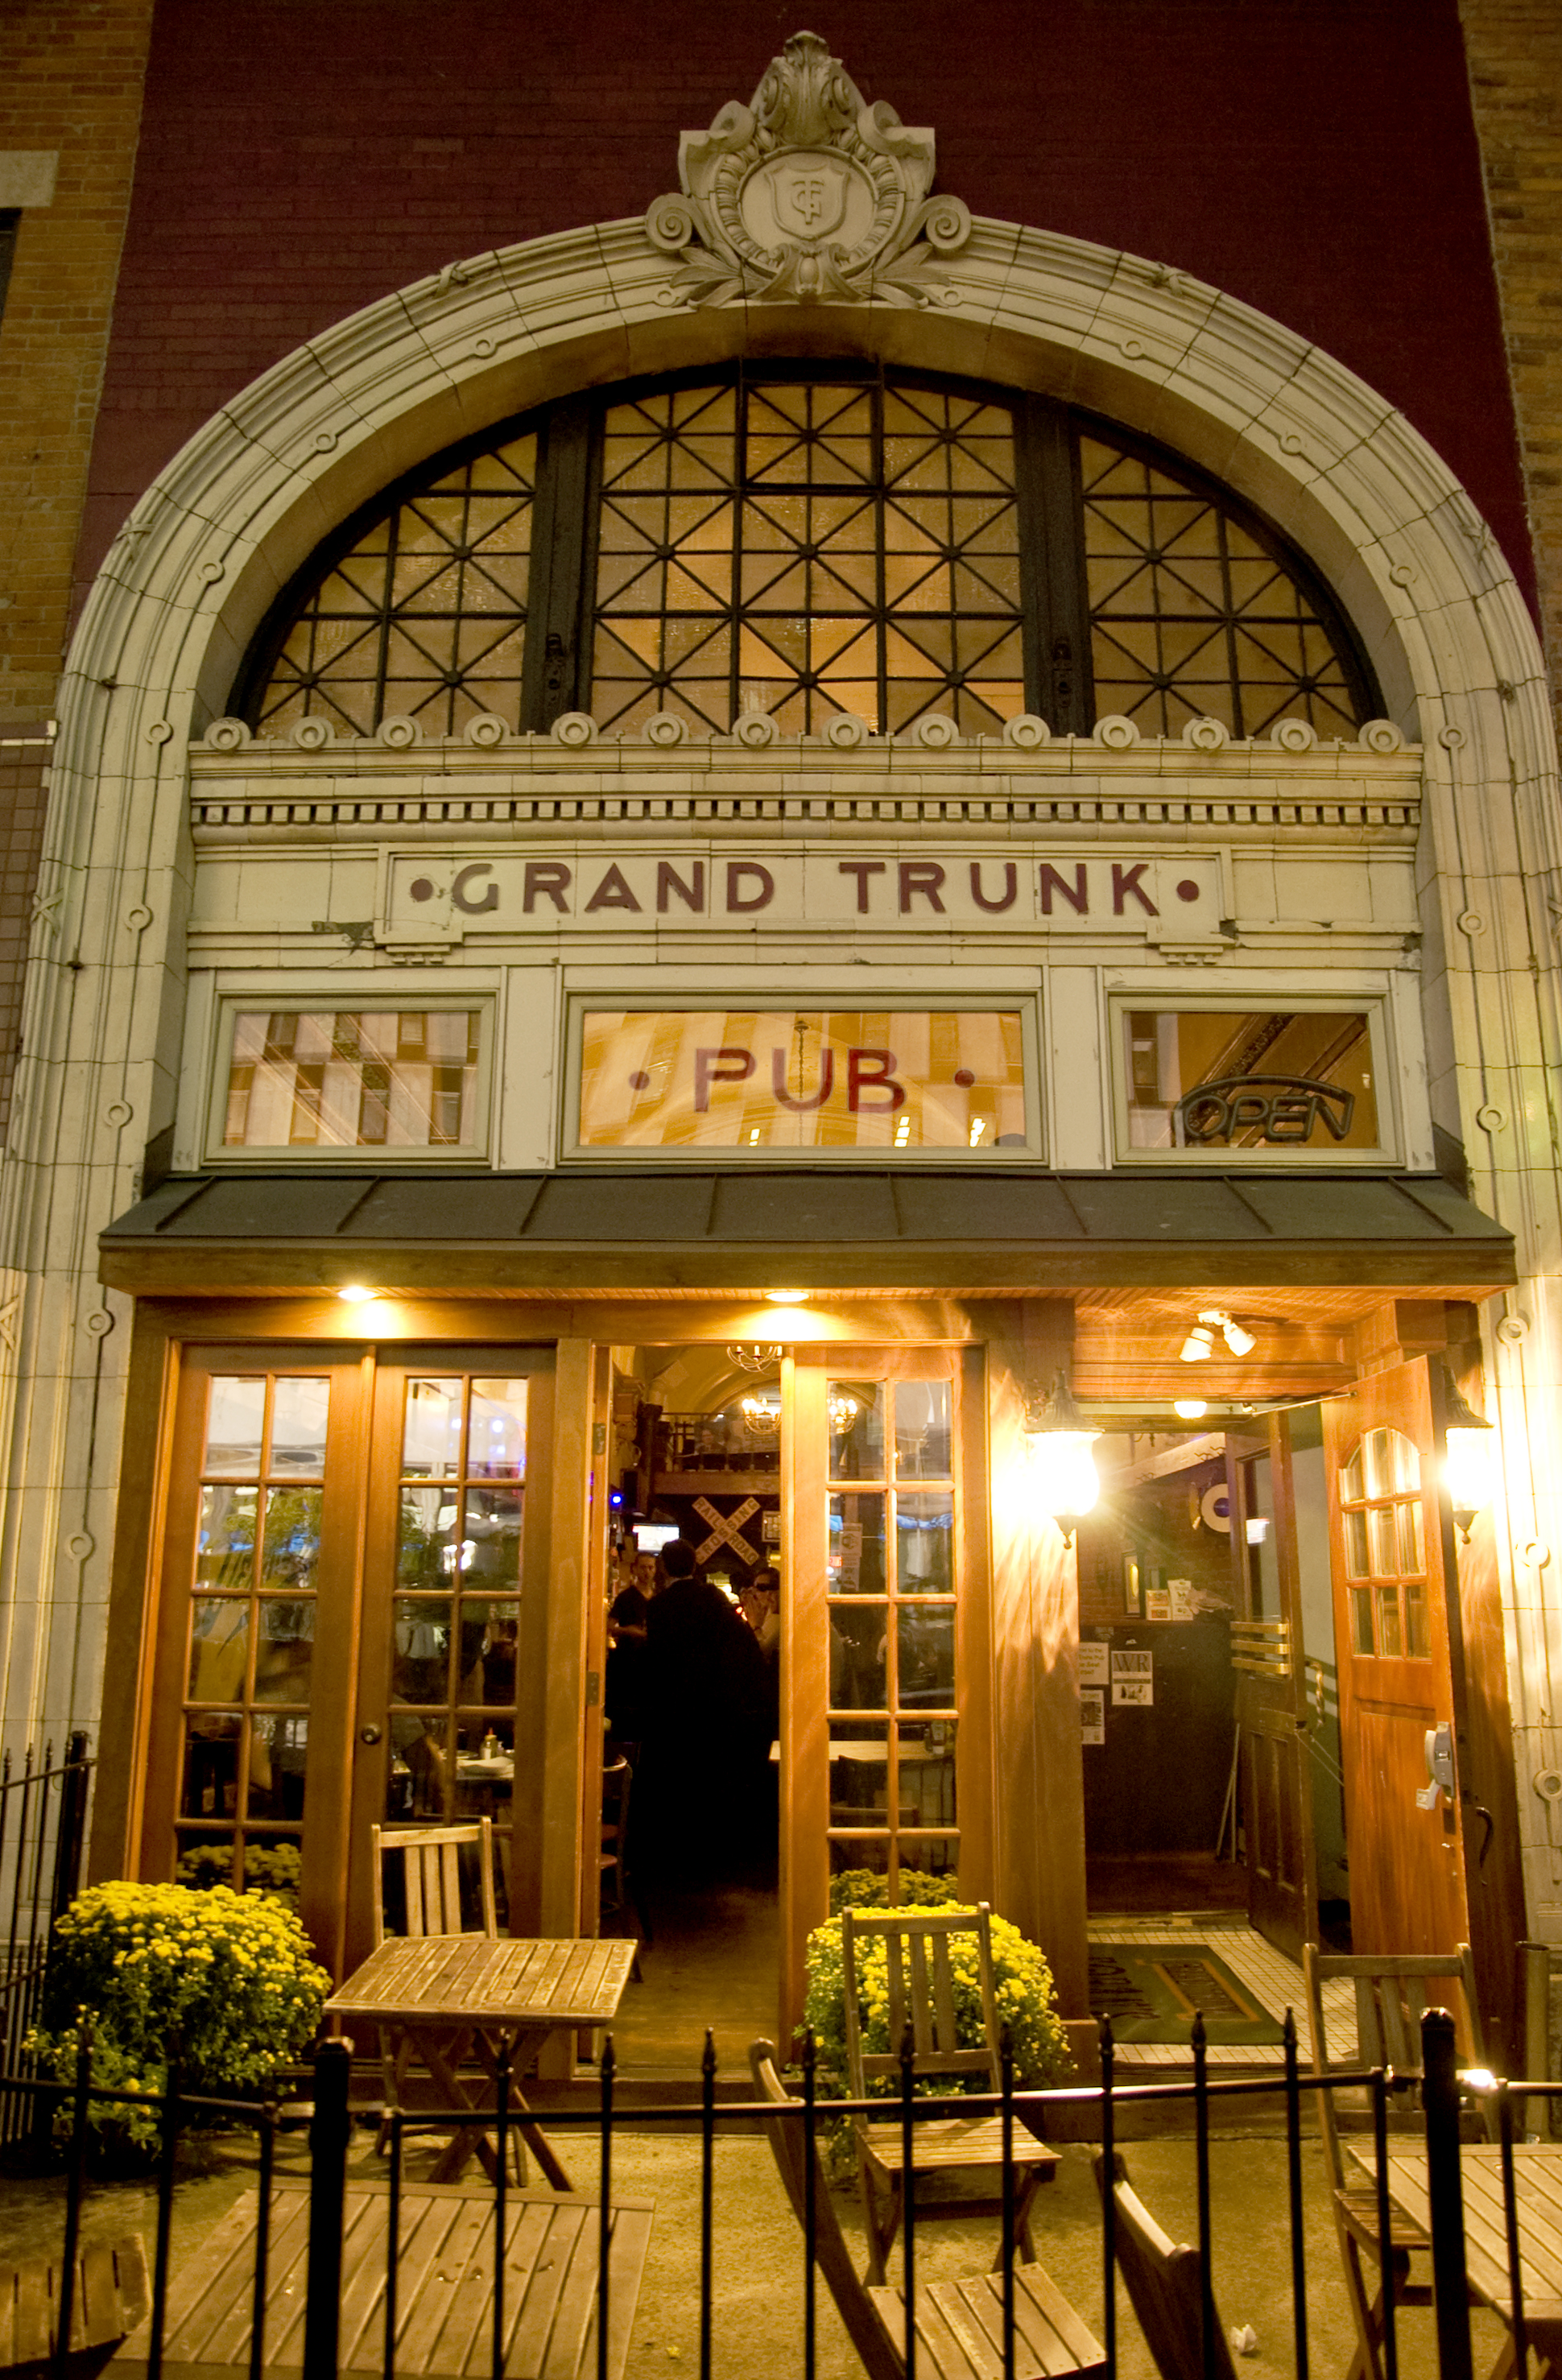 """Grand Trunk Pub"" by Ian Freimuth via Flickr Creative Commons"